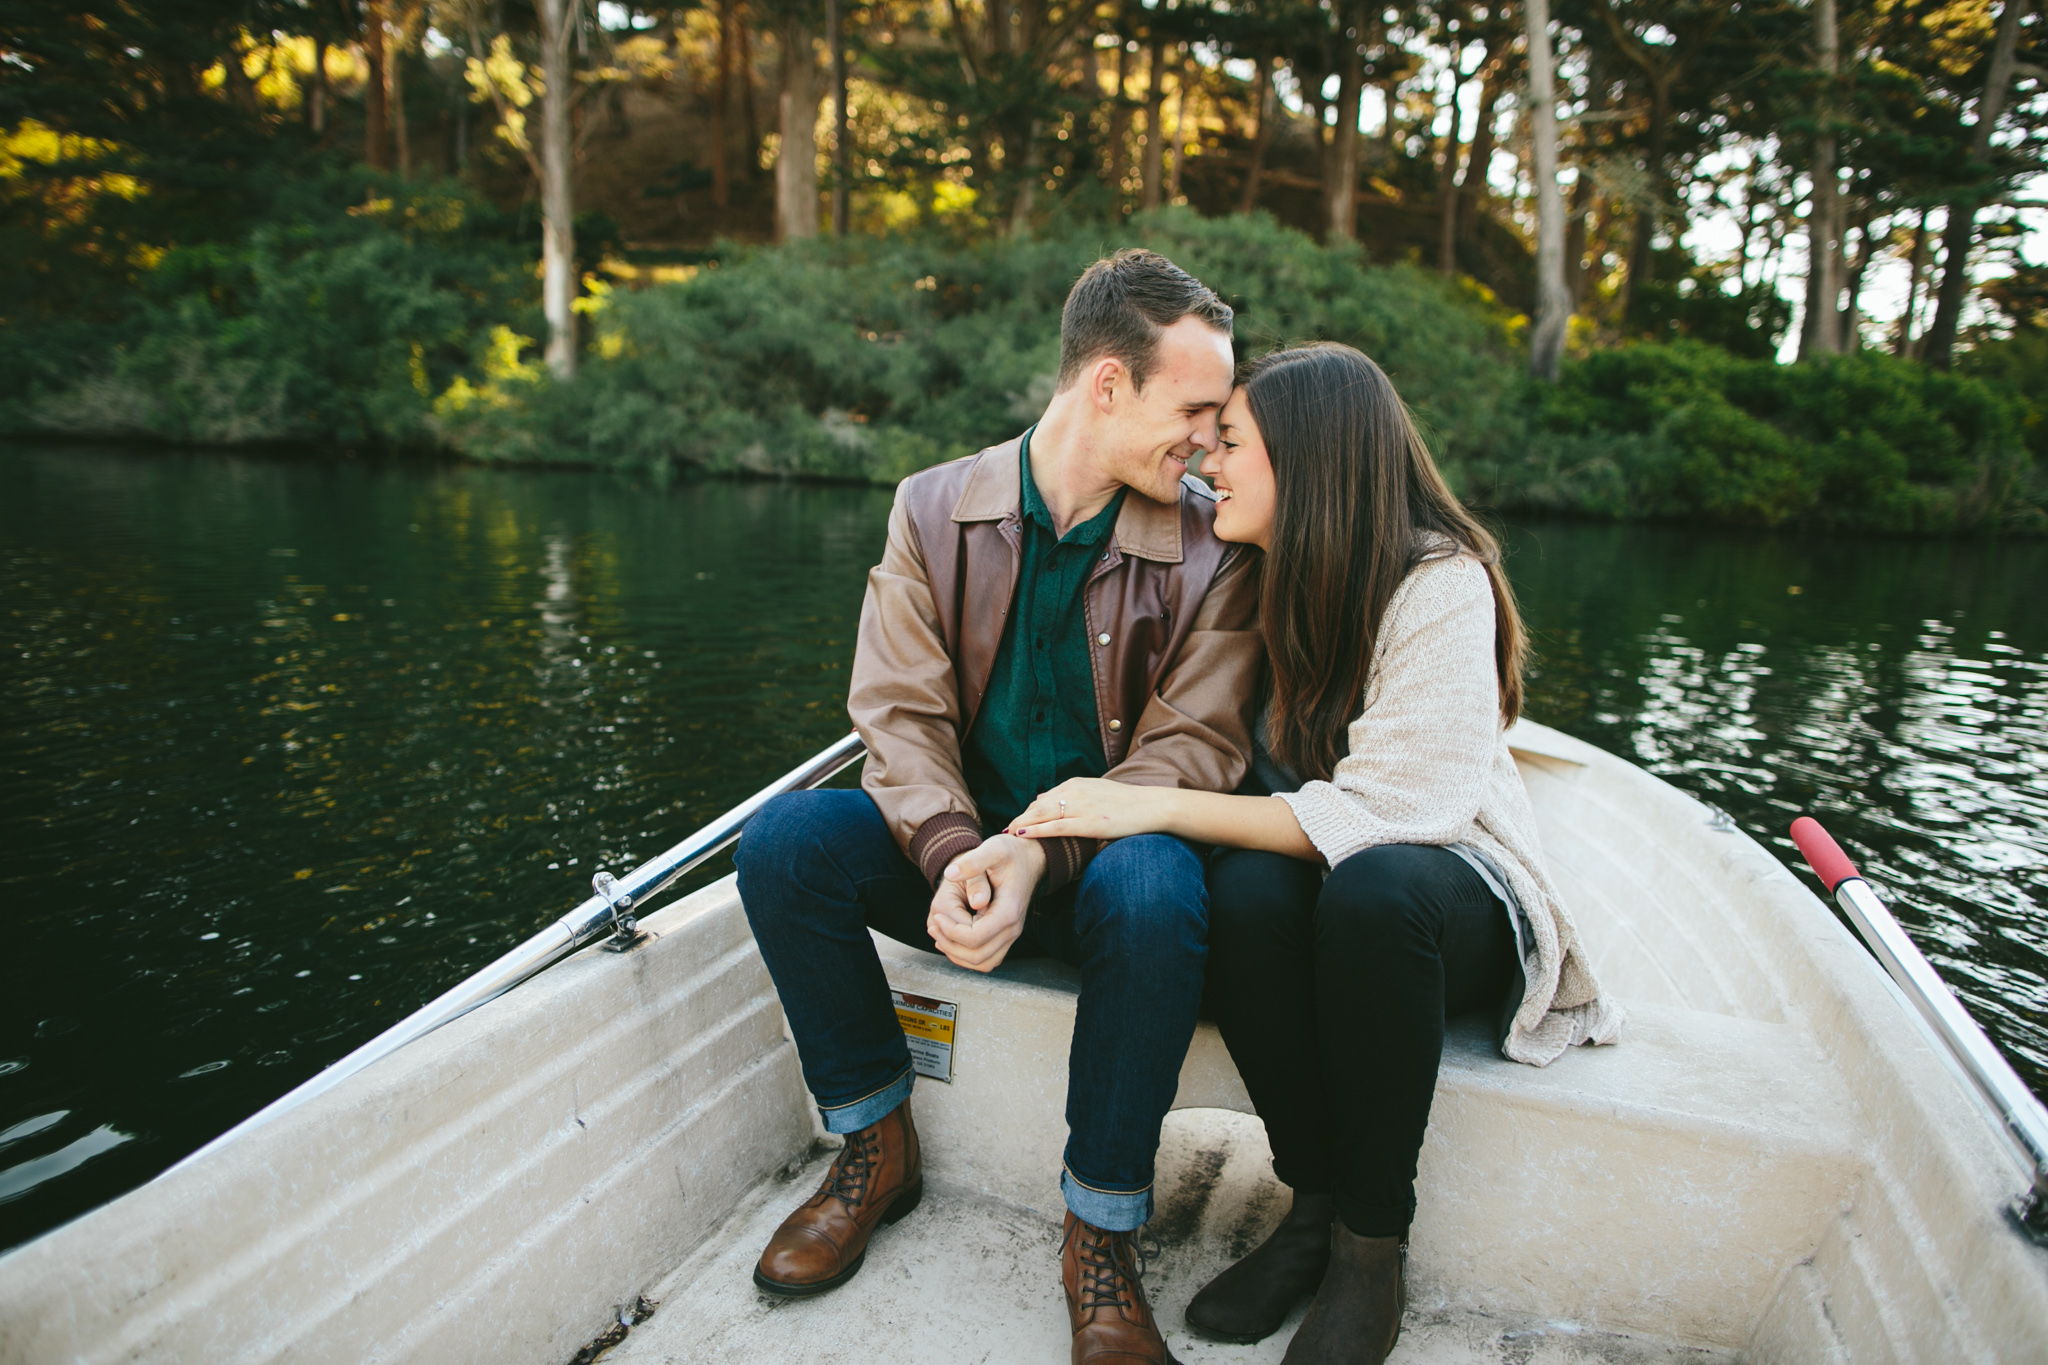 Sunee+Adam-Proposal-KellyBoitanoPhotography_WEB20151229_0046